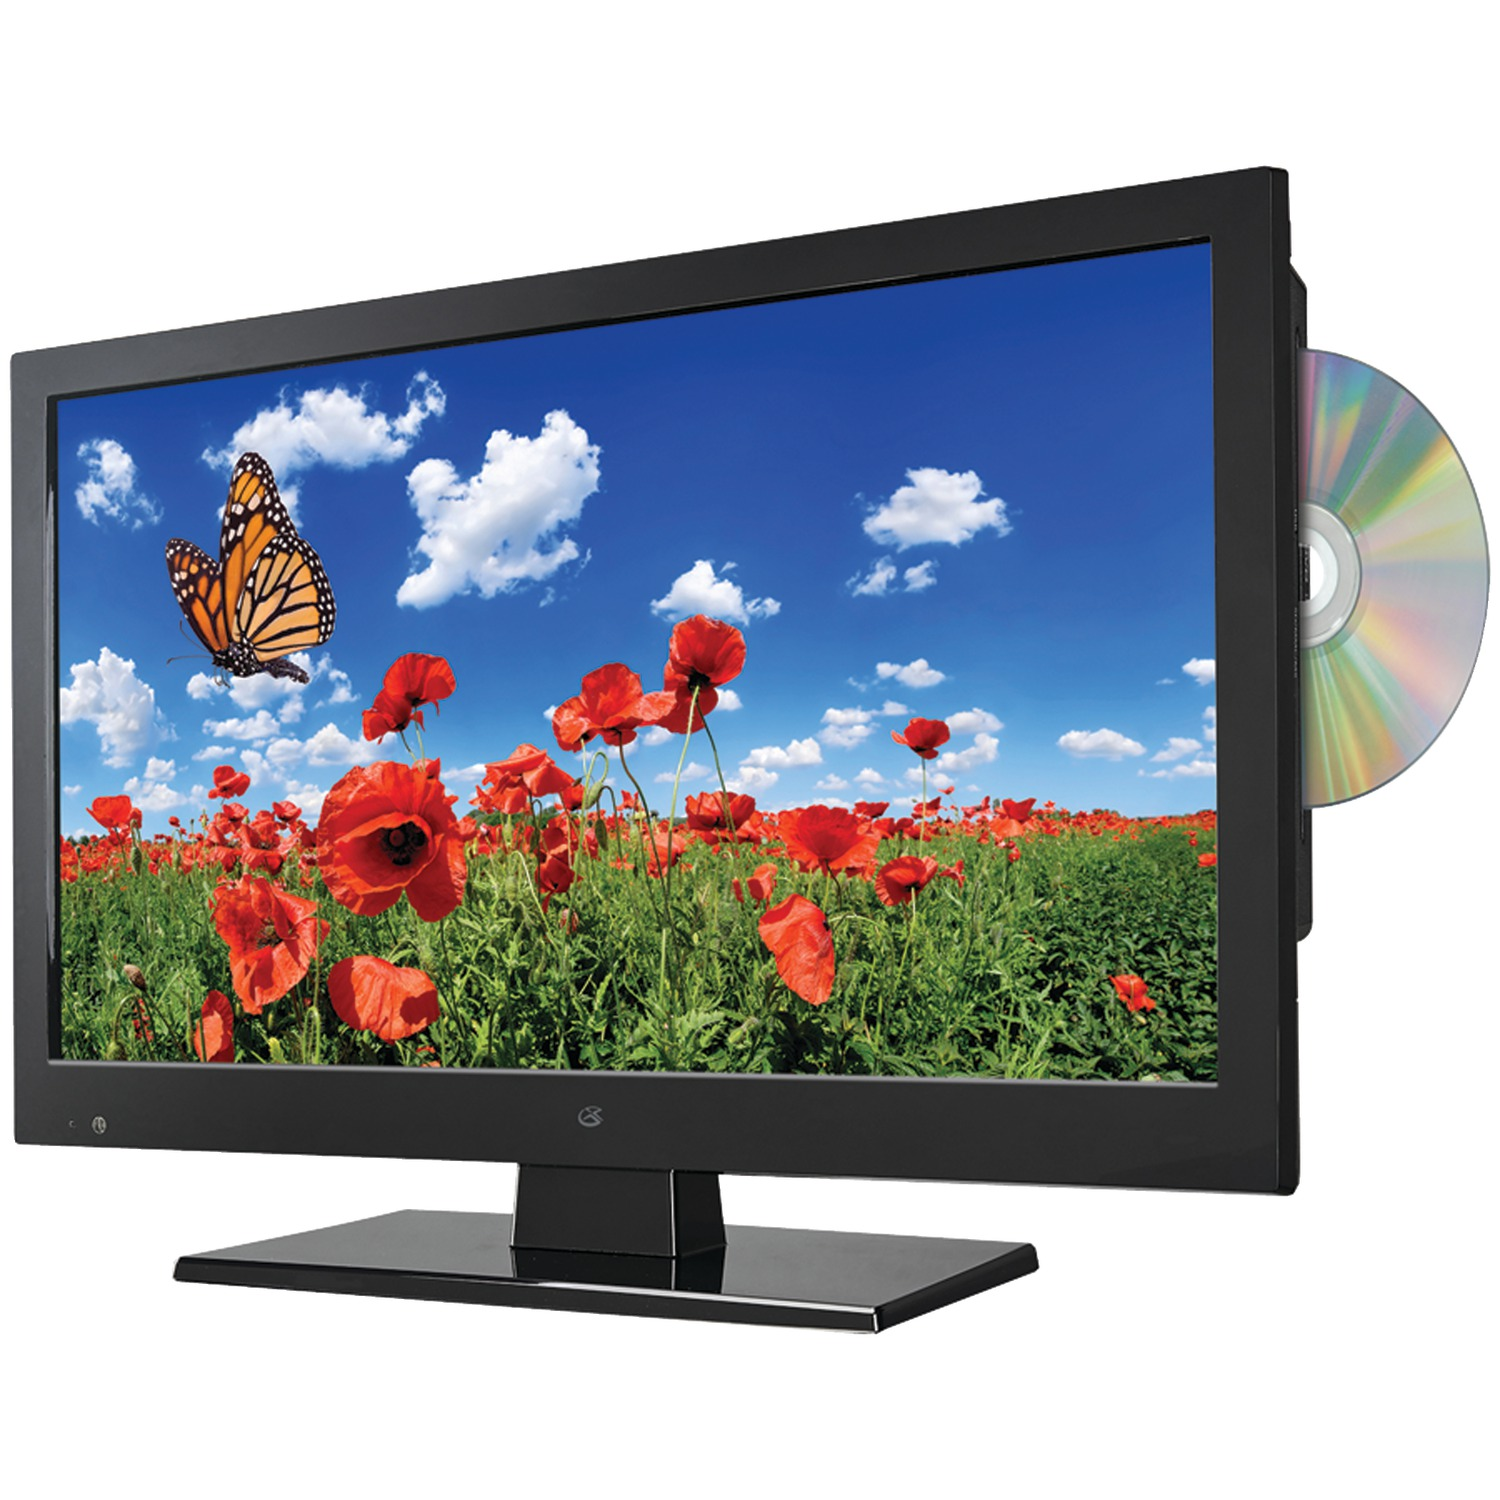 "GPX 15.6"" Class HD, LED TV with DVD Player 720p, 60Hz (TDE1587B) by GPX"